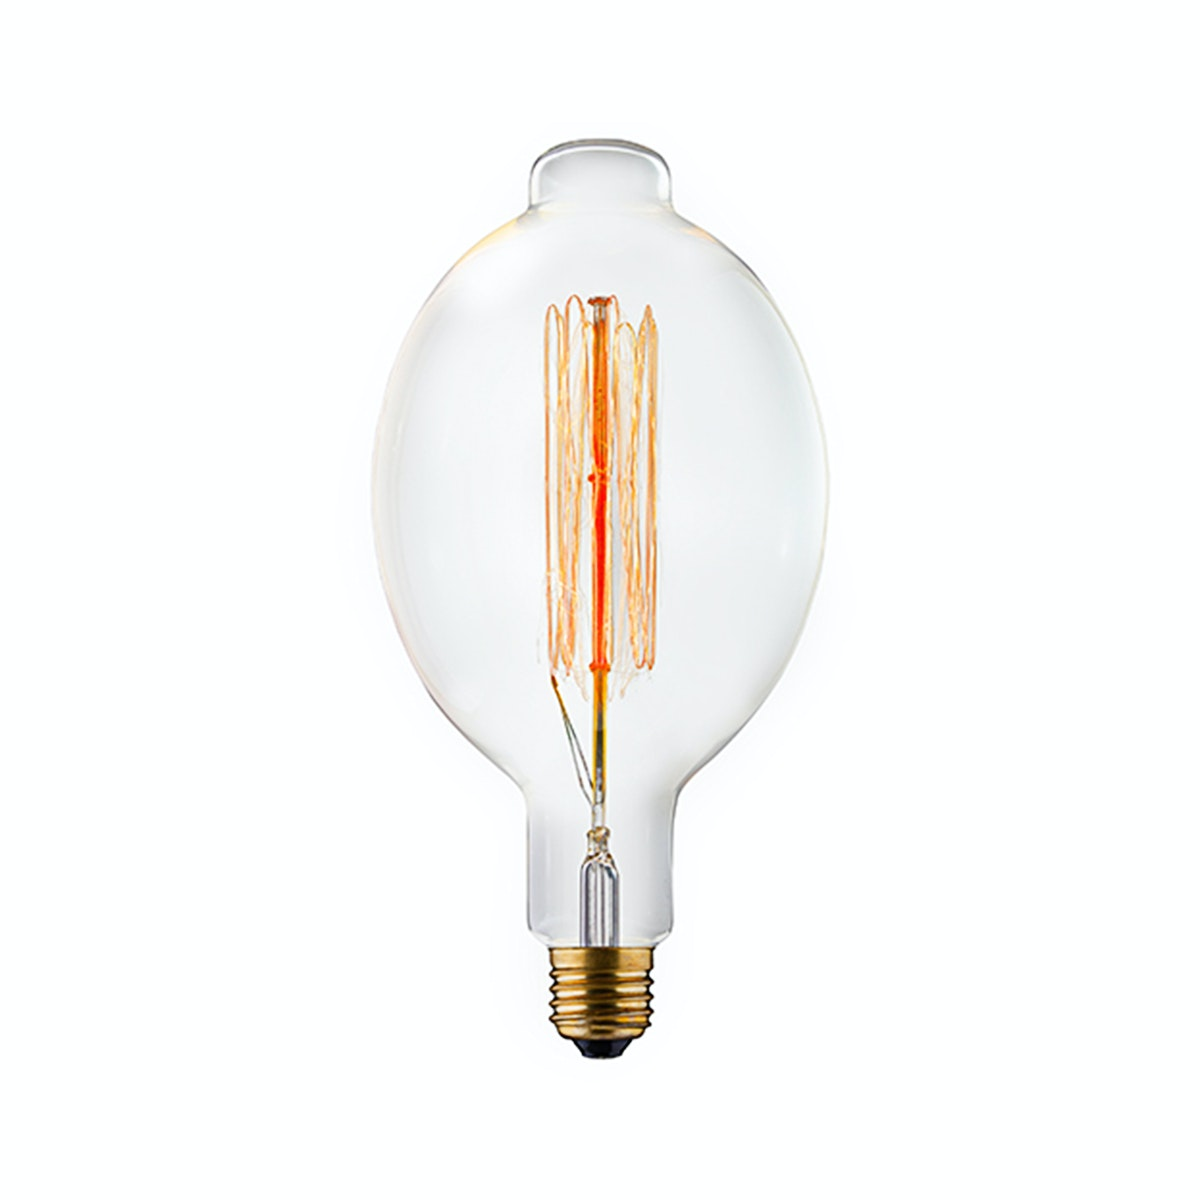 VIO The Bulb Bohlam Edison VE-52